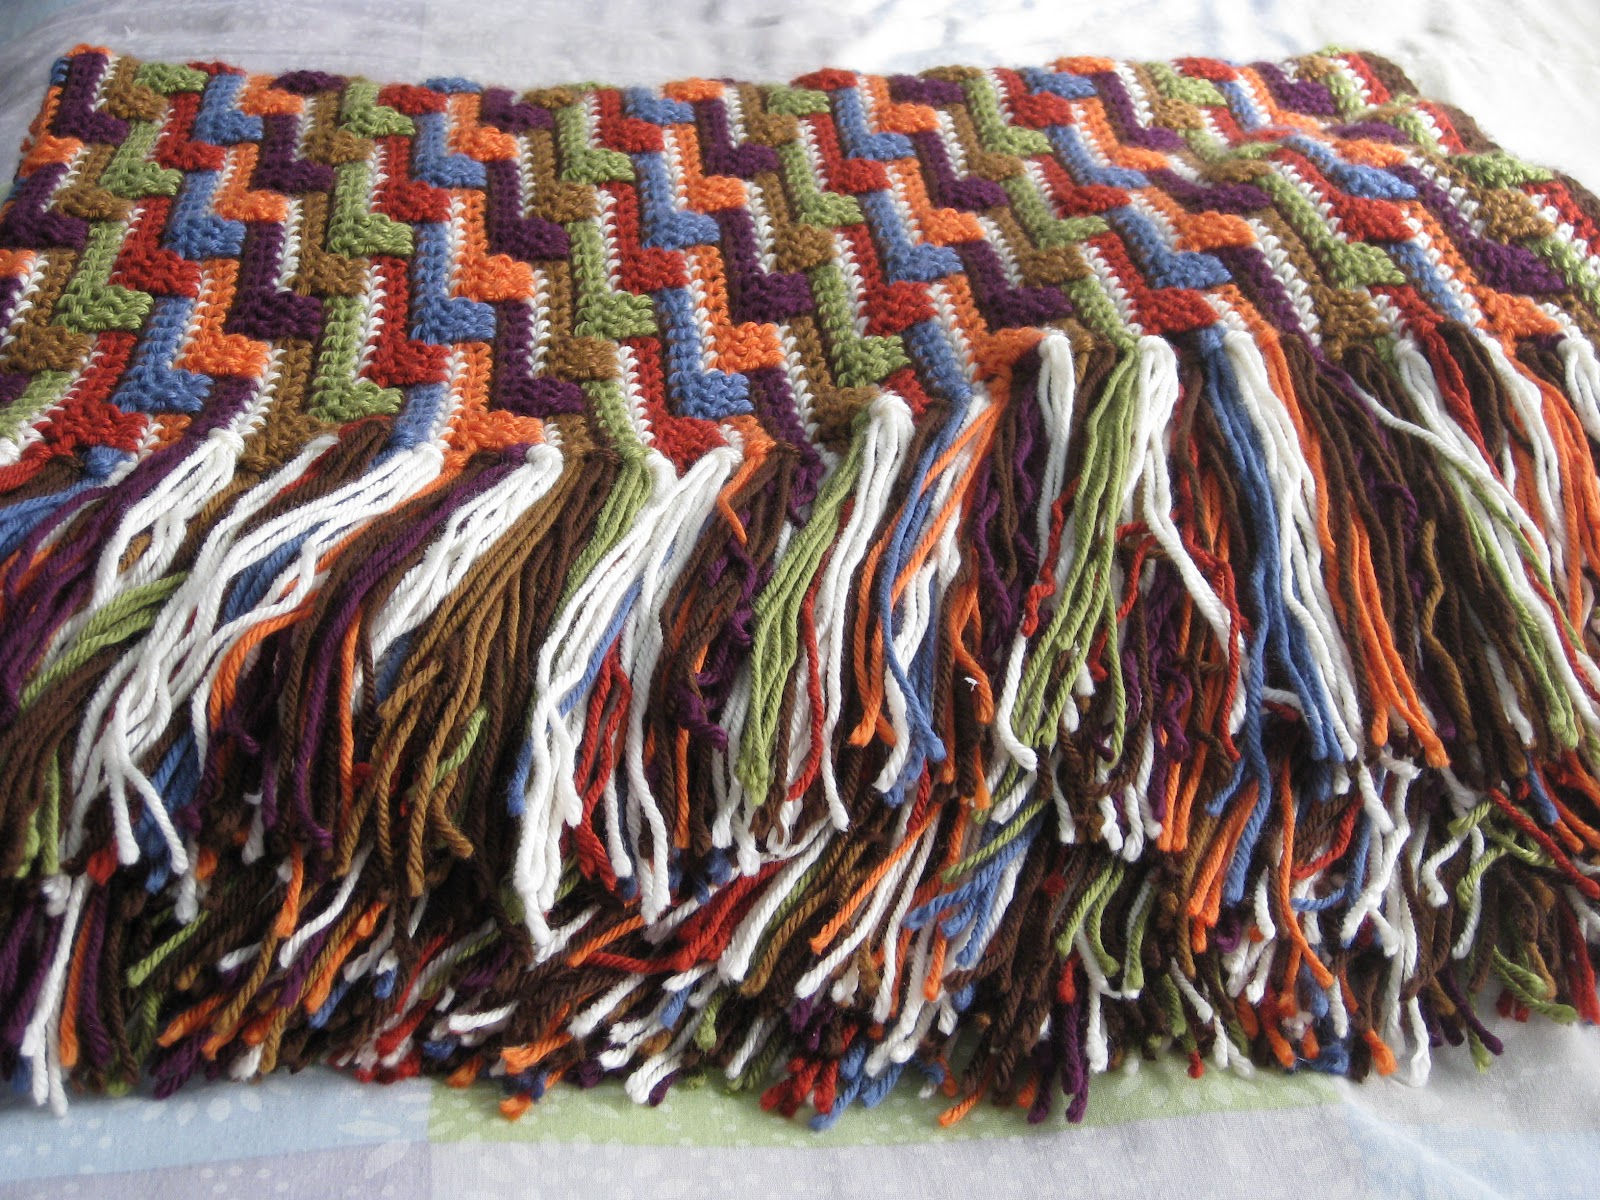 Inspired Resourceful Creative: Zingy Zig Zags is finally finished!